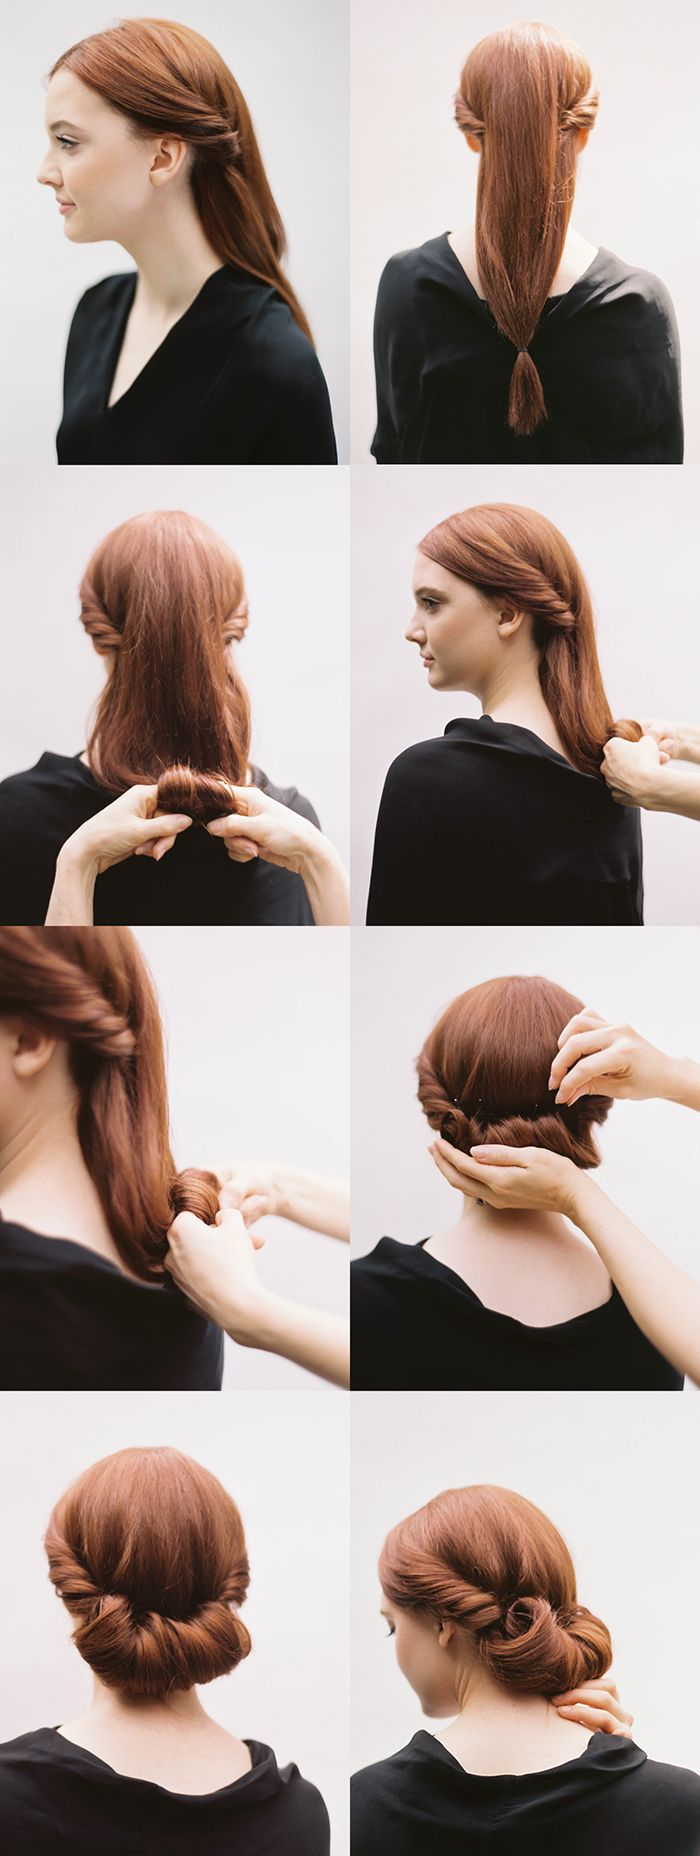 DIY Rolled Chignon Hair Tutorial